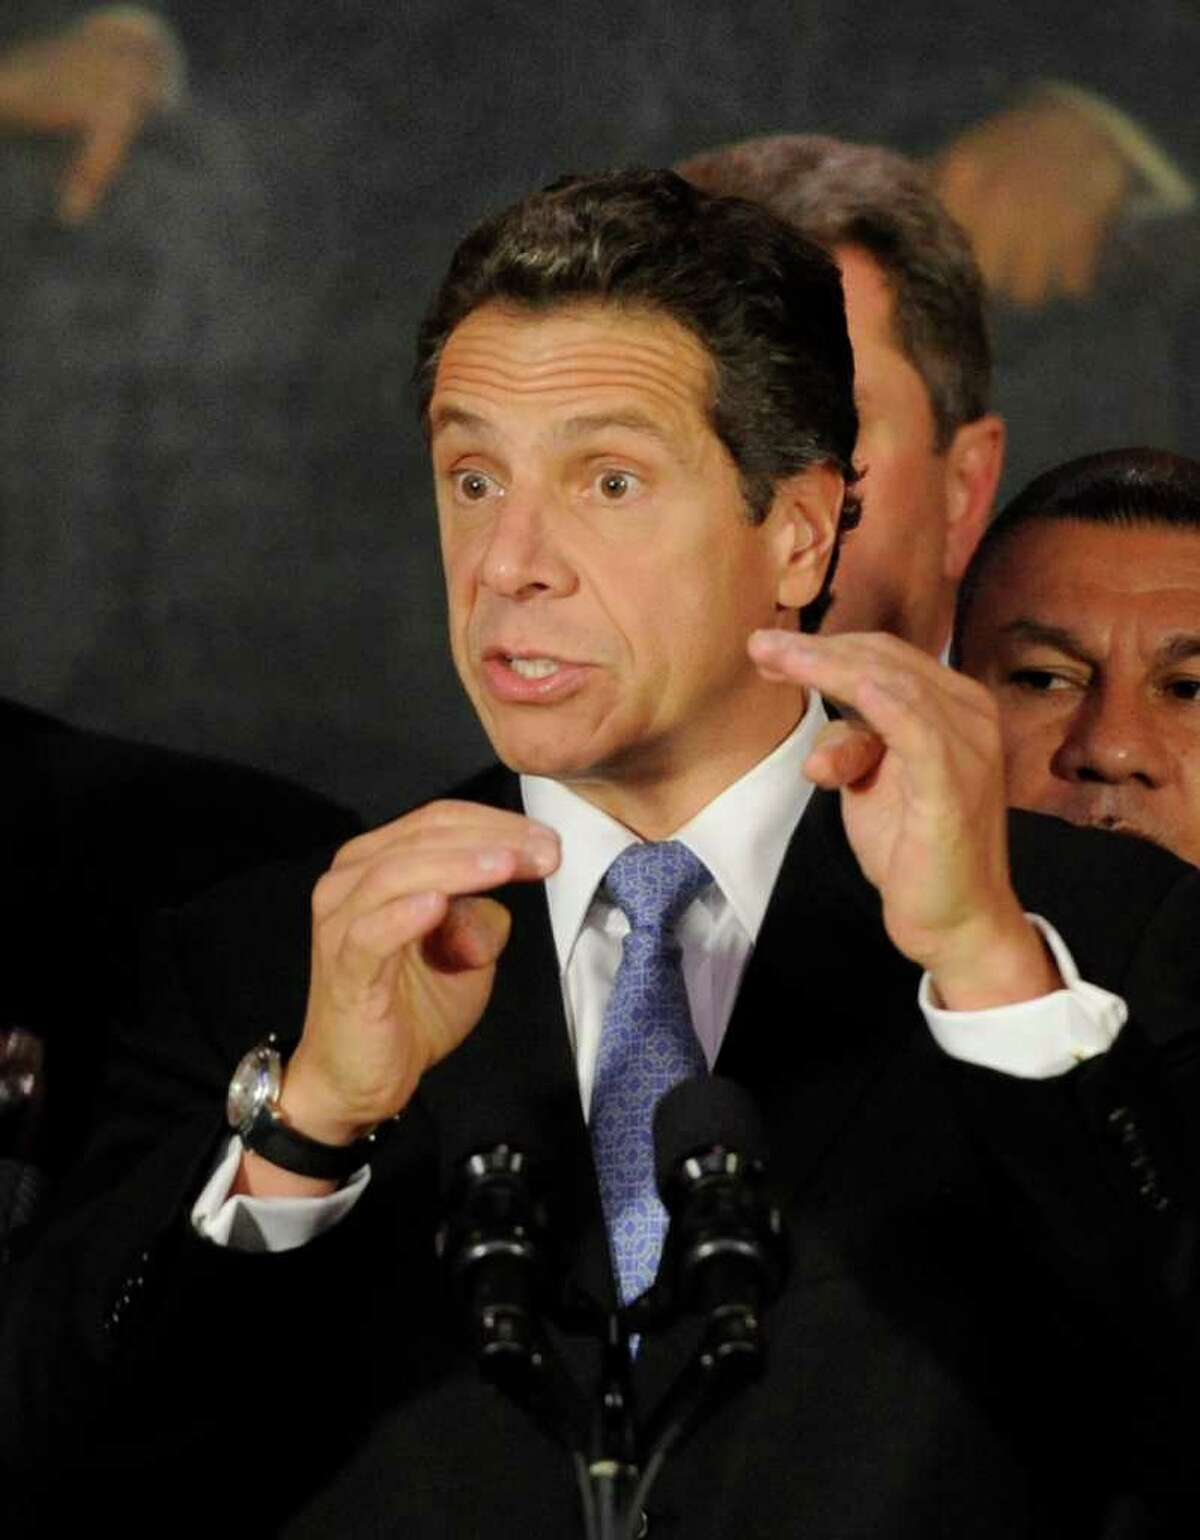 Governor Andrew Cuomo is animated in his response to questions by the media on various subjects after signing an Executive Order in the Red Room of the Capital in Albany, N.Y. October 6, 2011, that will ensure that state government services are accessible to all regardless of English language ability. (Skip Dickstein / Times Union)